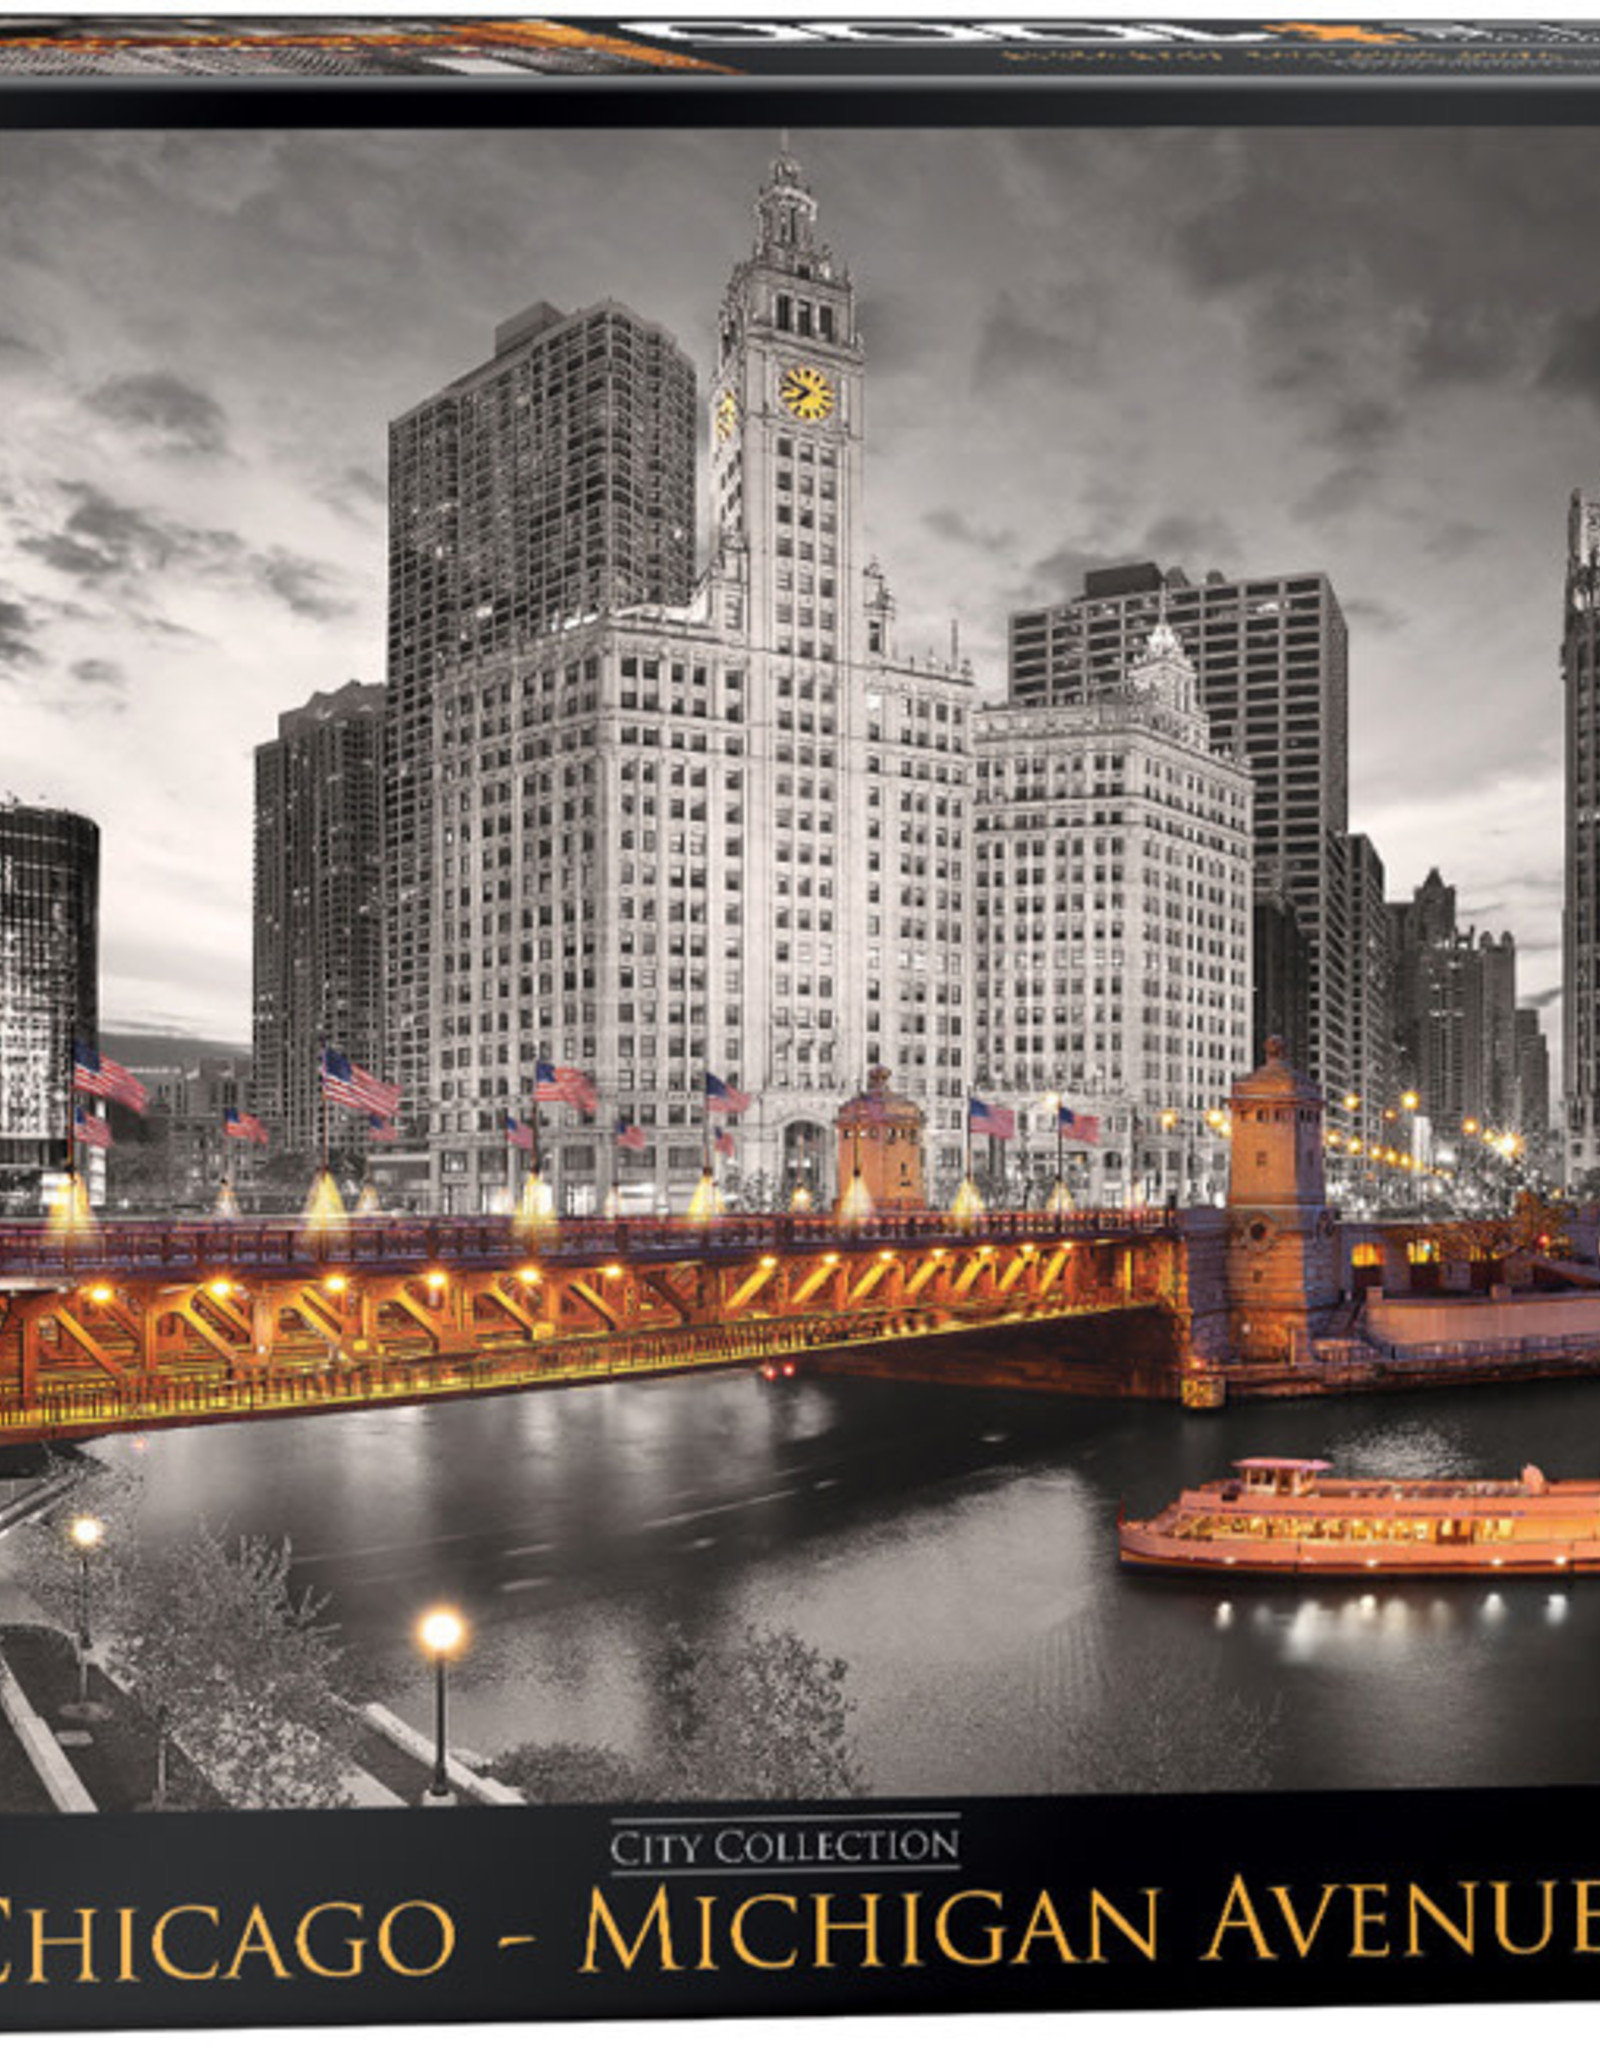 Eurographics Chicago - Michigan Avenue HDR Photography 1000pc